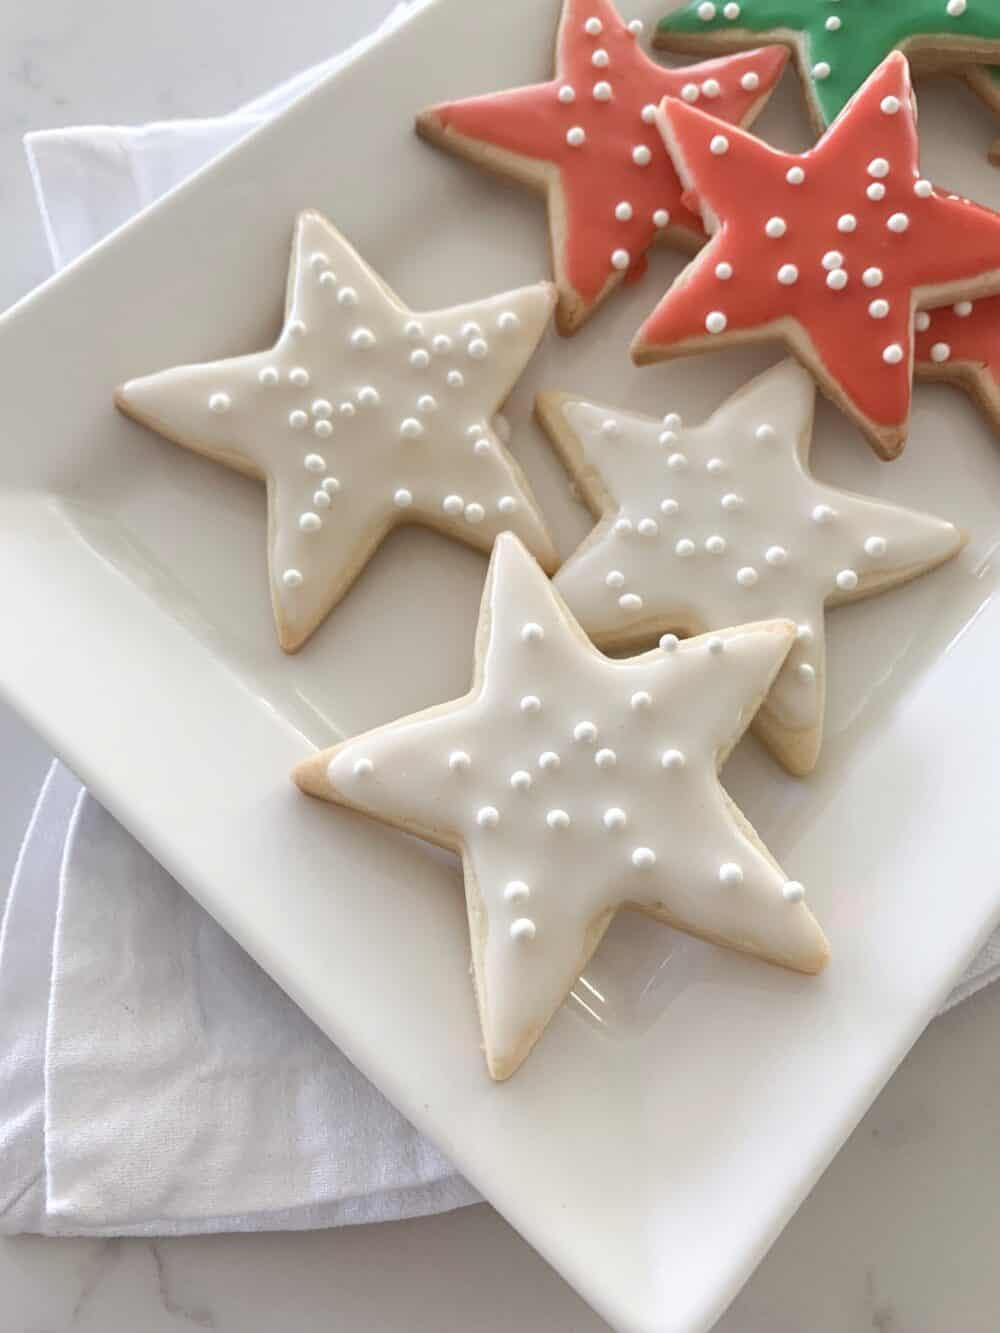 iced sugar cookies